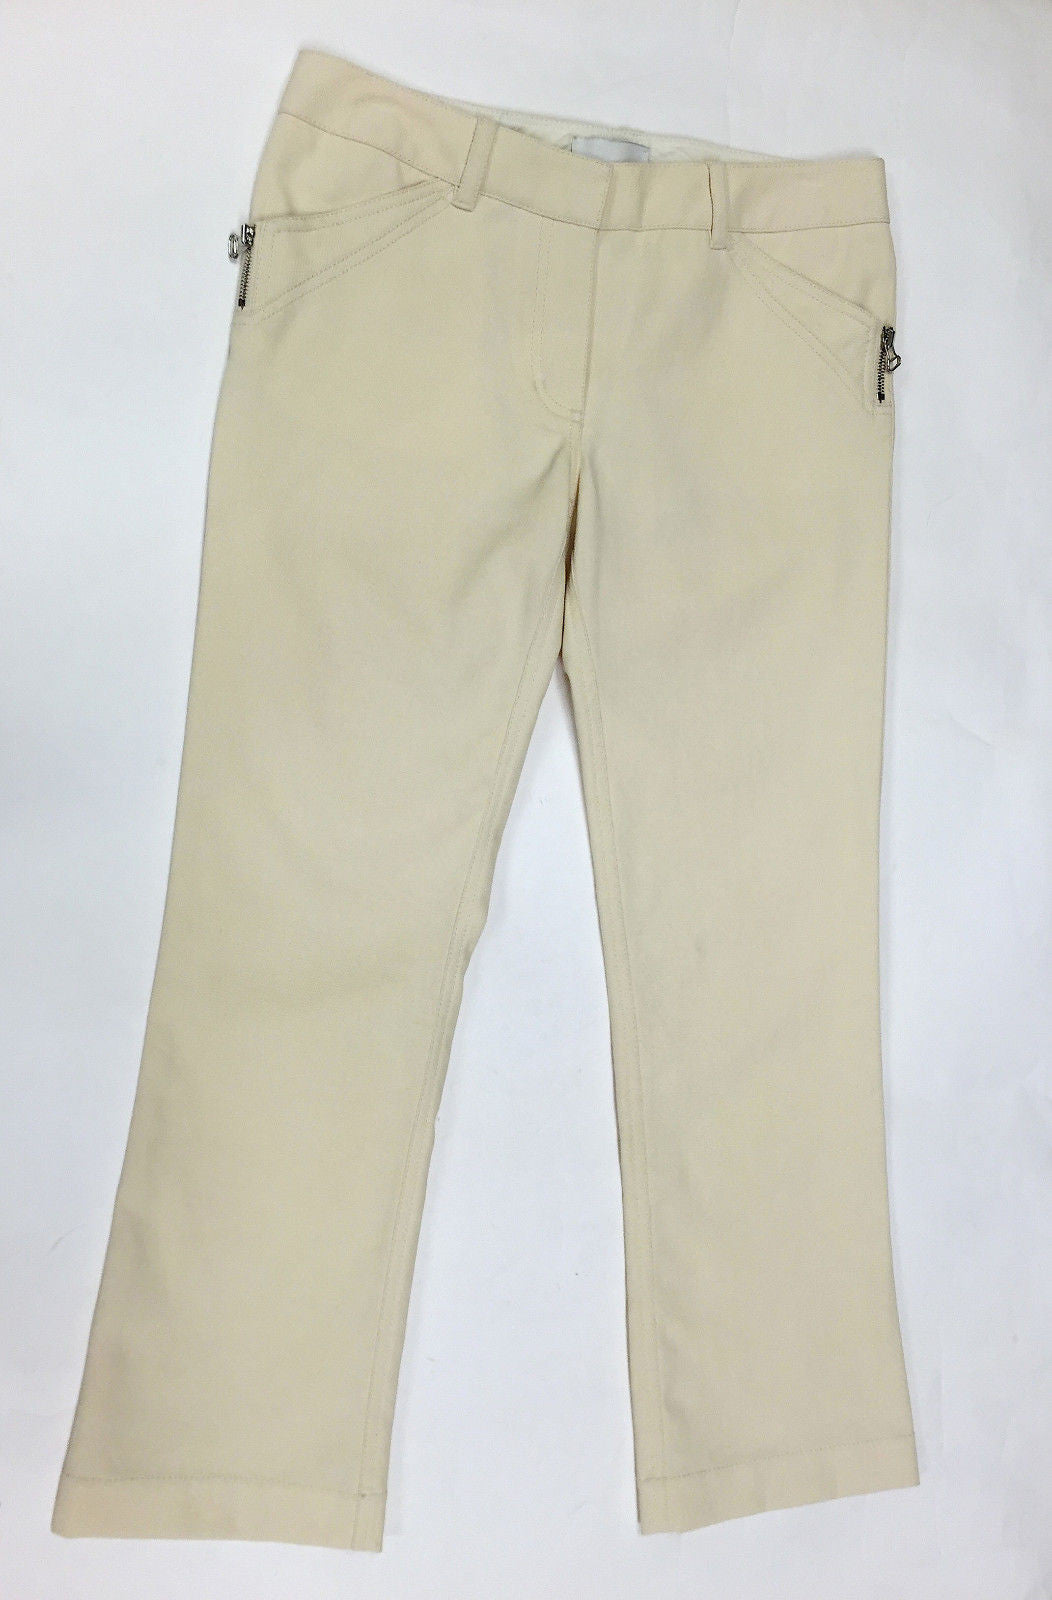 bisbiz.com 3.1 PHILIP LIM  Ivory Cotton-Blend Cropped Boot-Leg Jeans Pants Size: 6 - Bis Luxury Resale